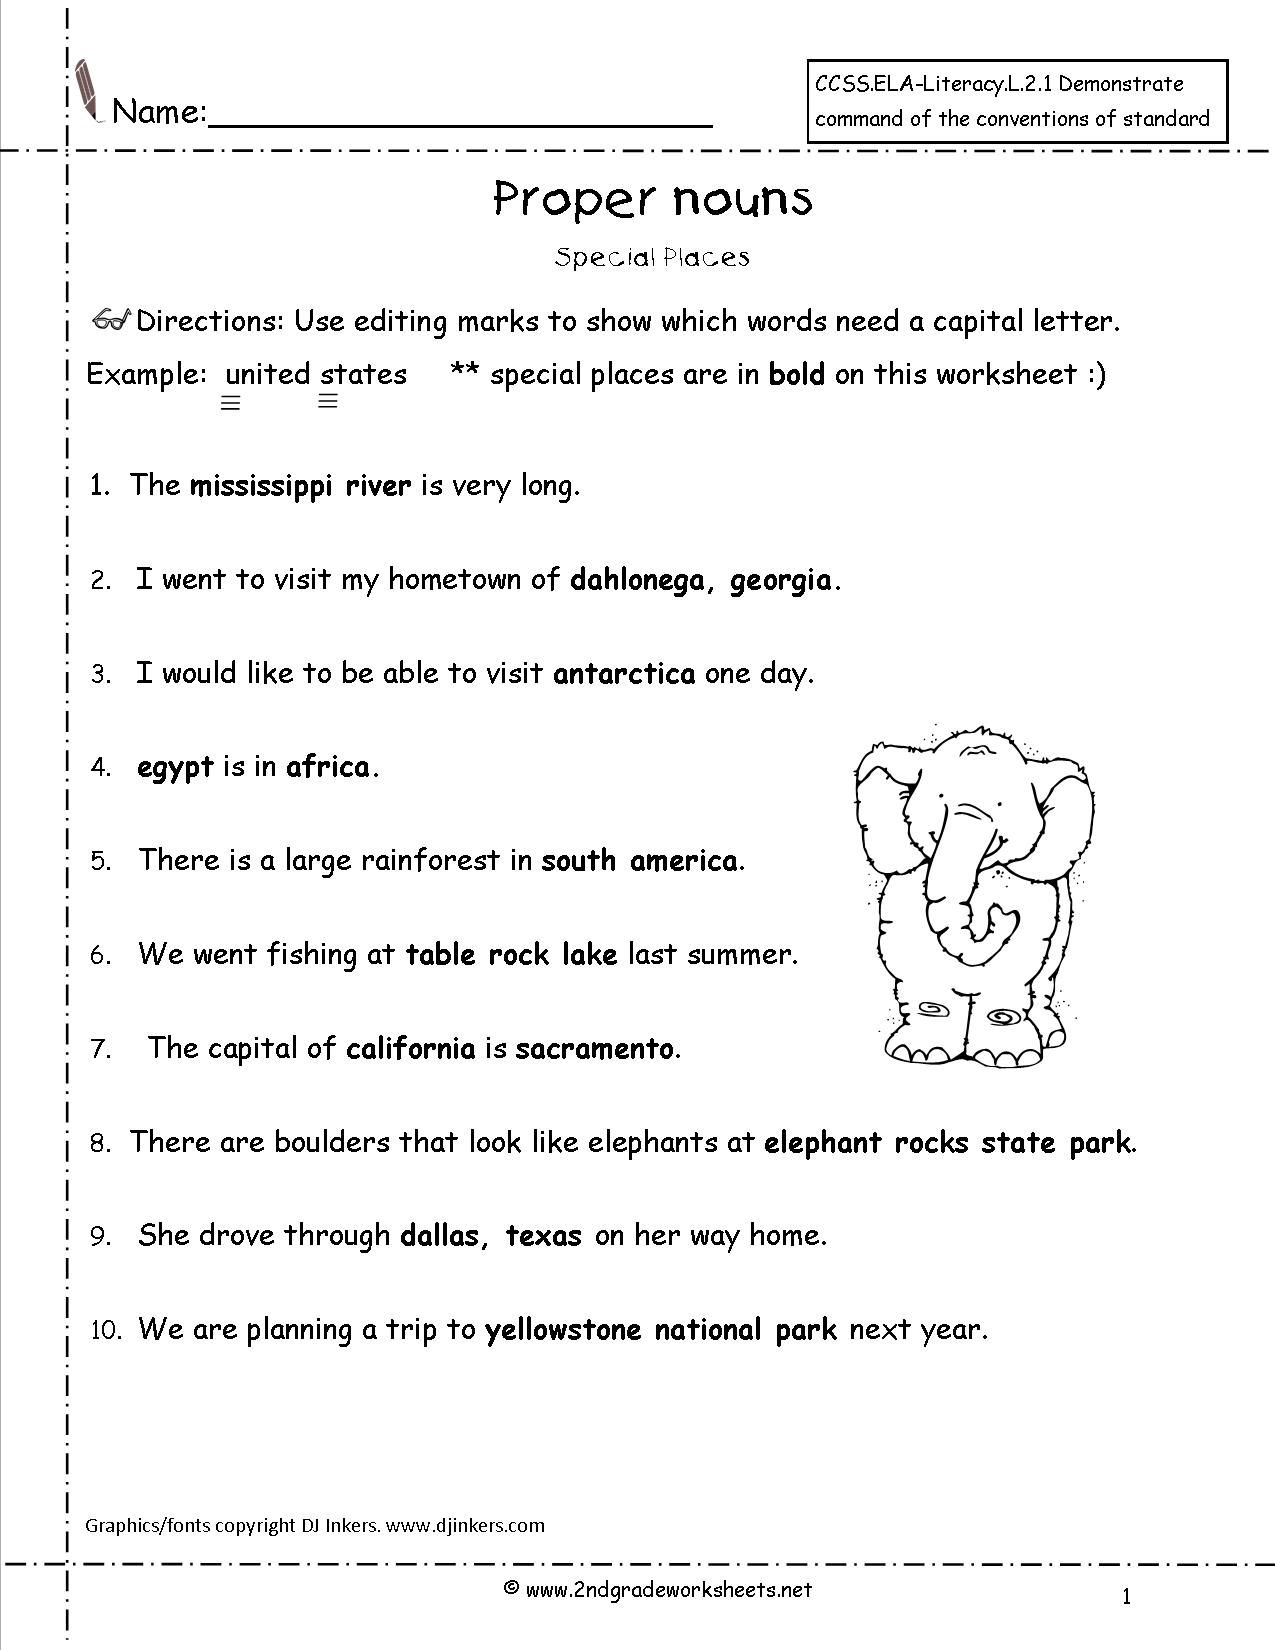 Proper Noun Worksheets For Kids